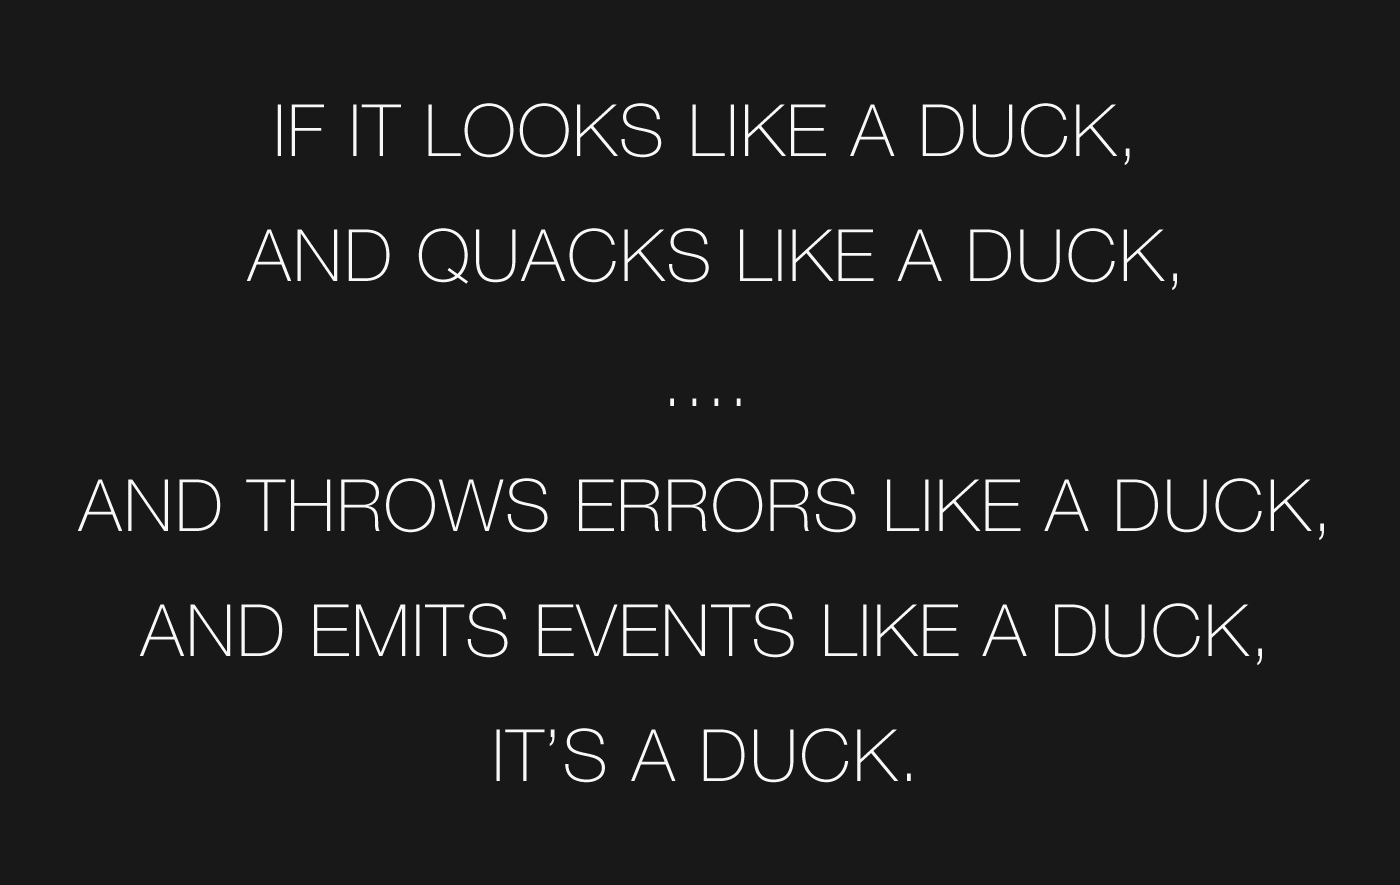 If it looks like a duck, and quacks like a duck, and throws errors like a duck, and emits events like a duck, it's a duck.